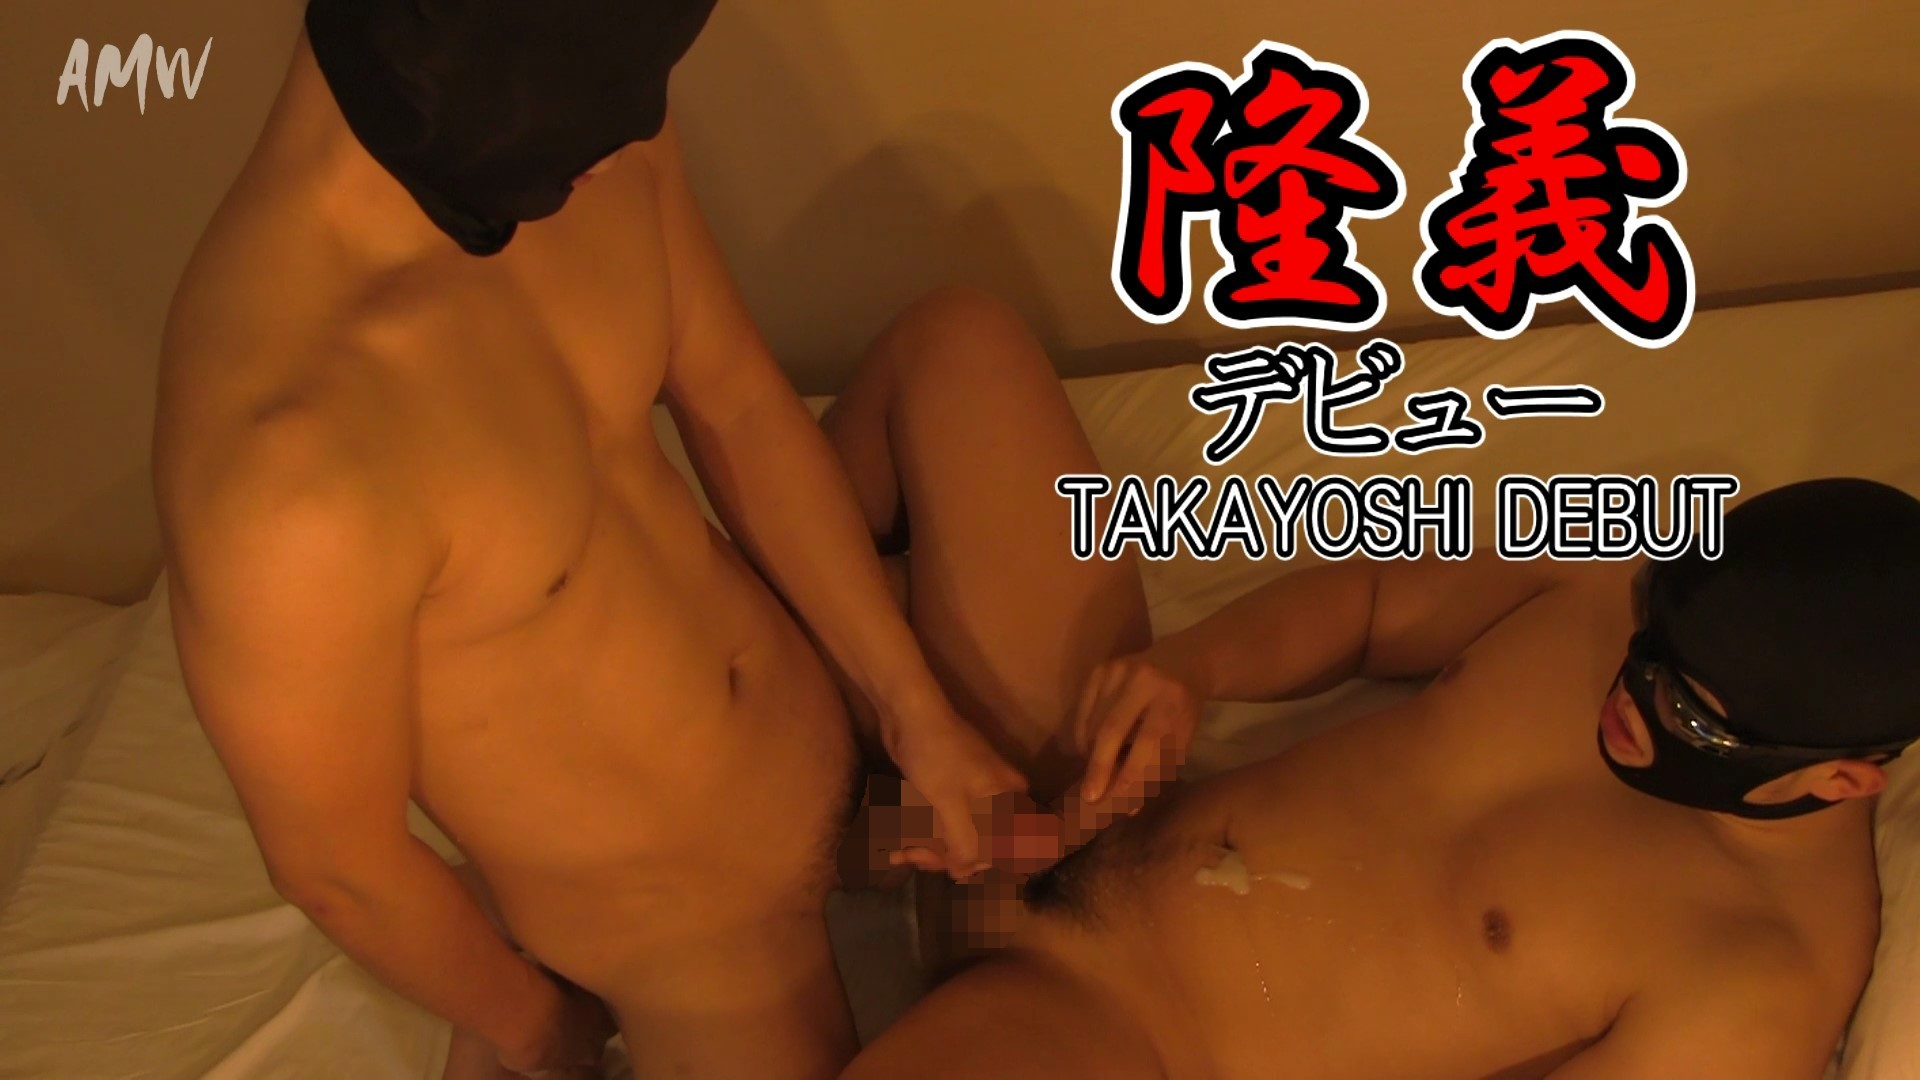 takayoshi-debut-CONTENTS.jpg